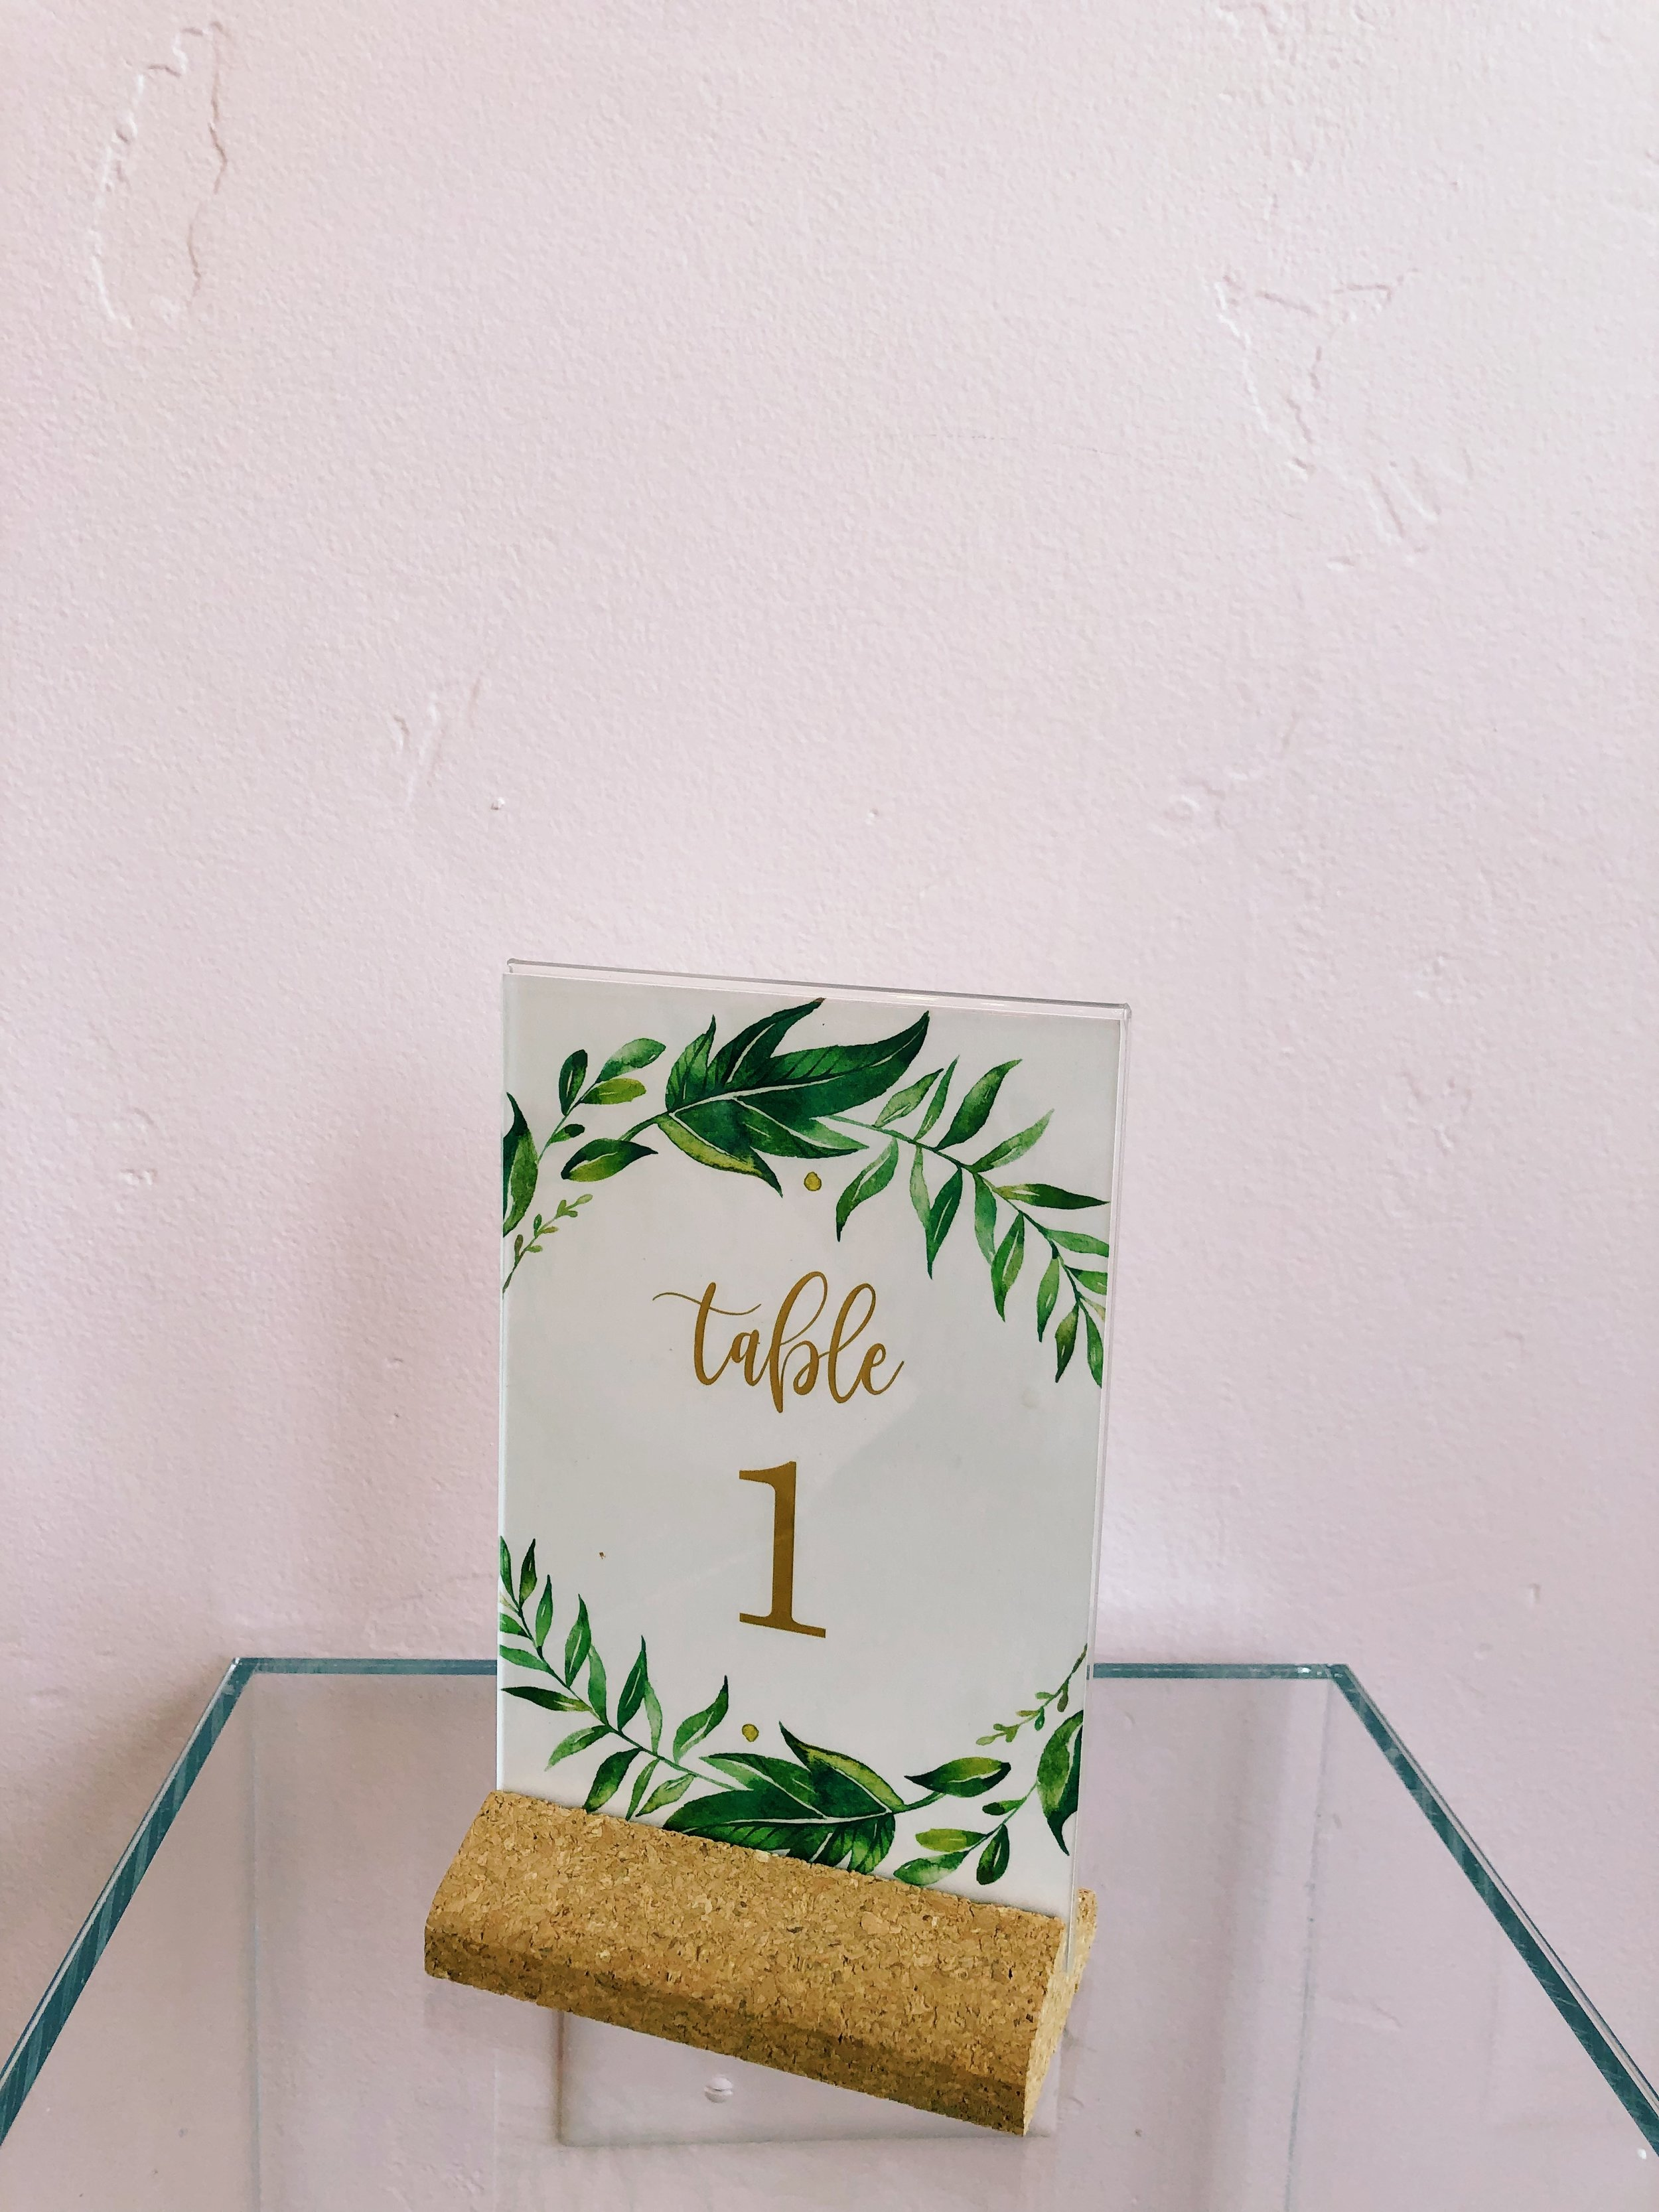 "Cork Customizable Table Numbers - 1-24 available in the greenery motif pictured. You can also customize yourself with any 4"" x 6"" card stock."